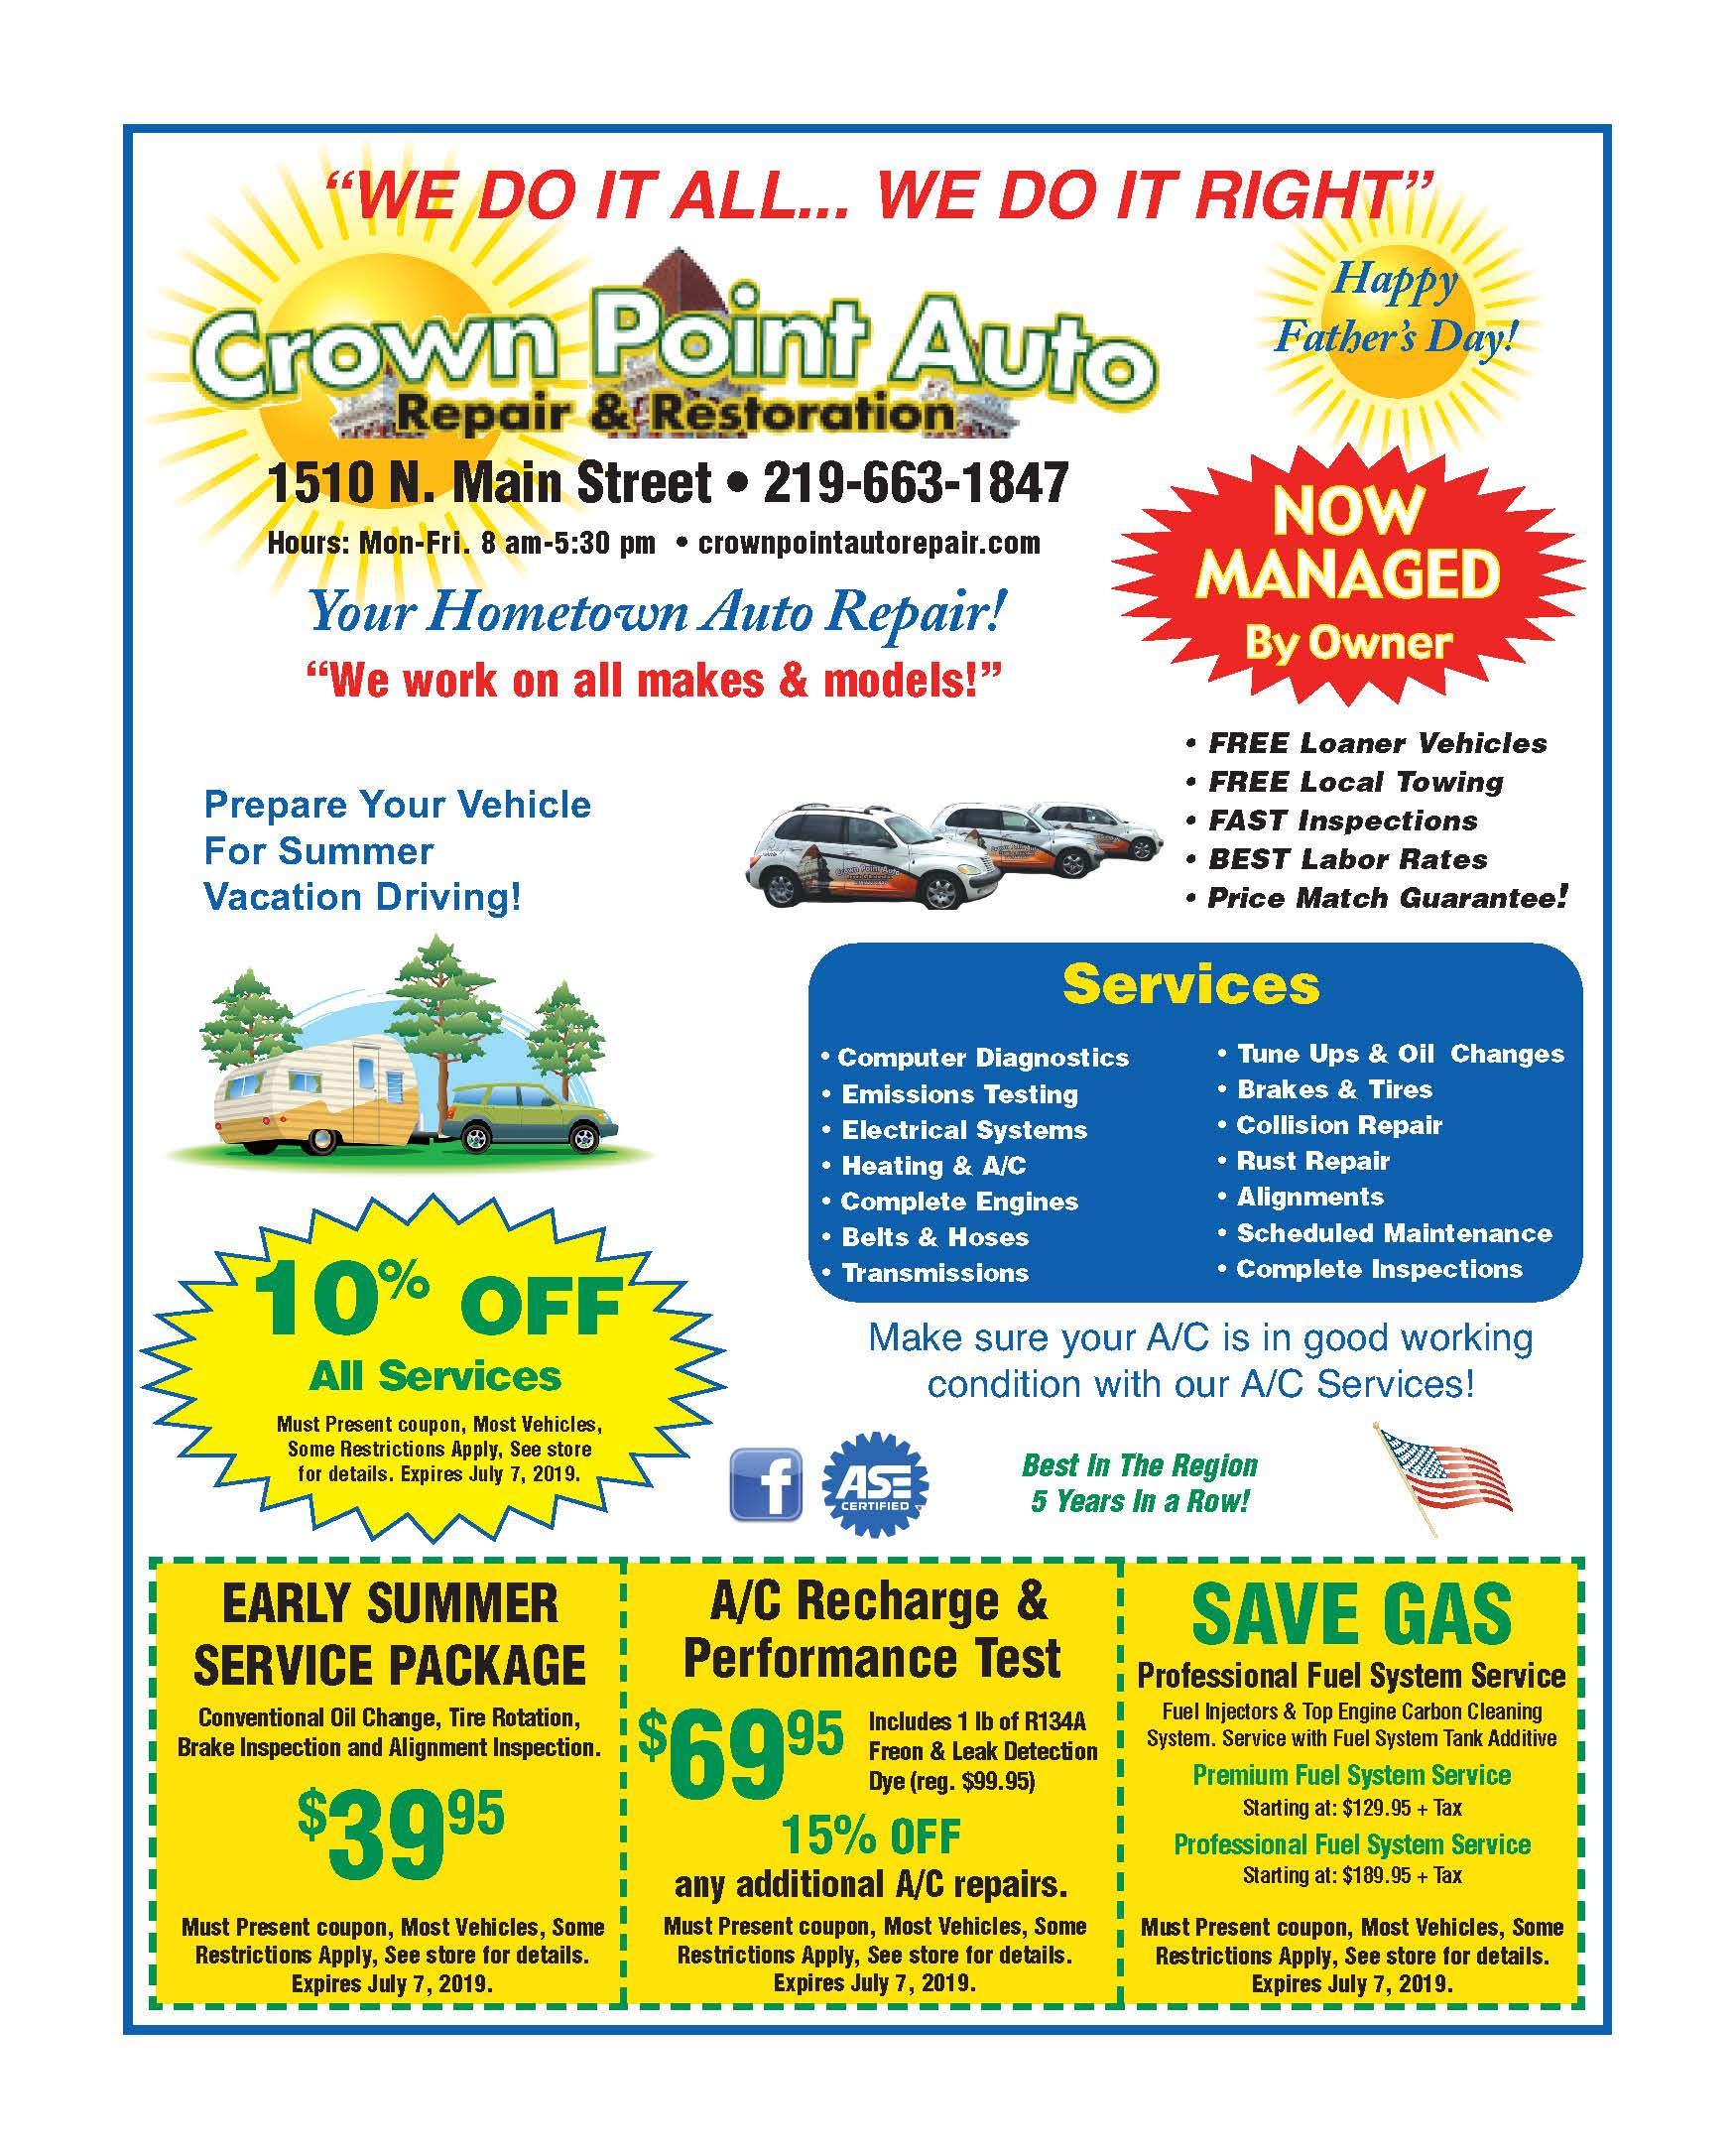 Family Flyer Crown Point Auto